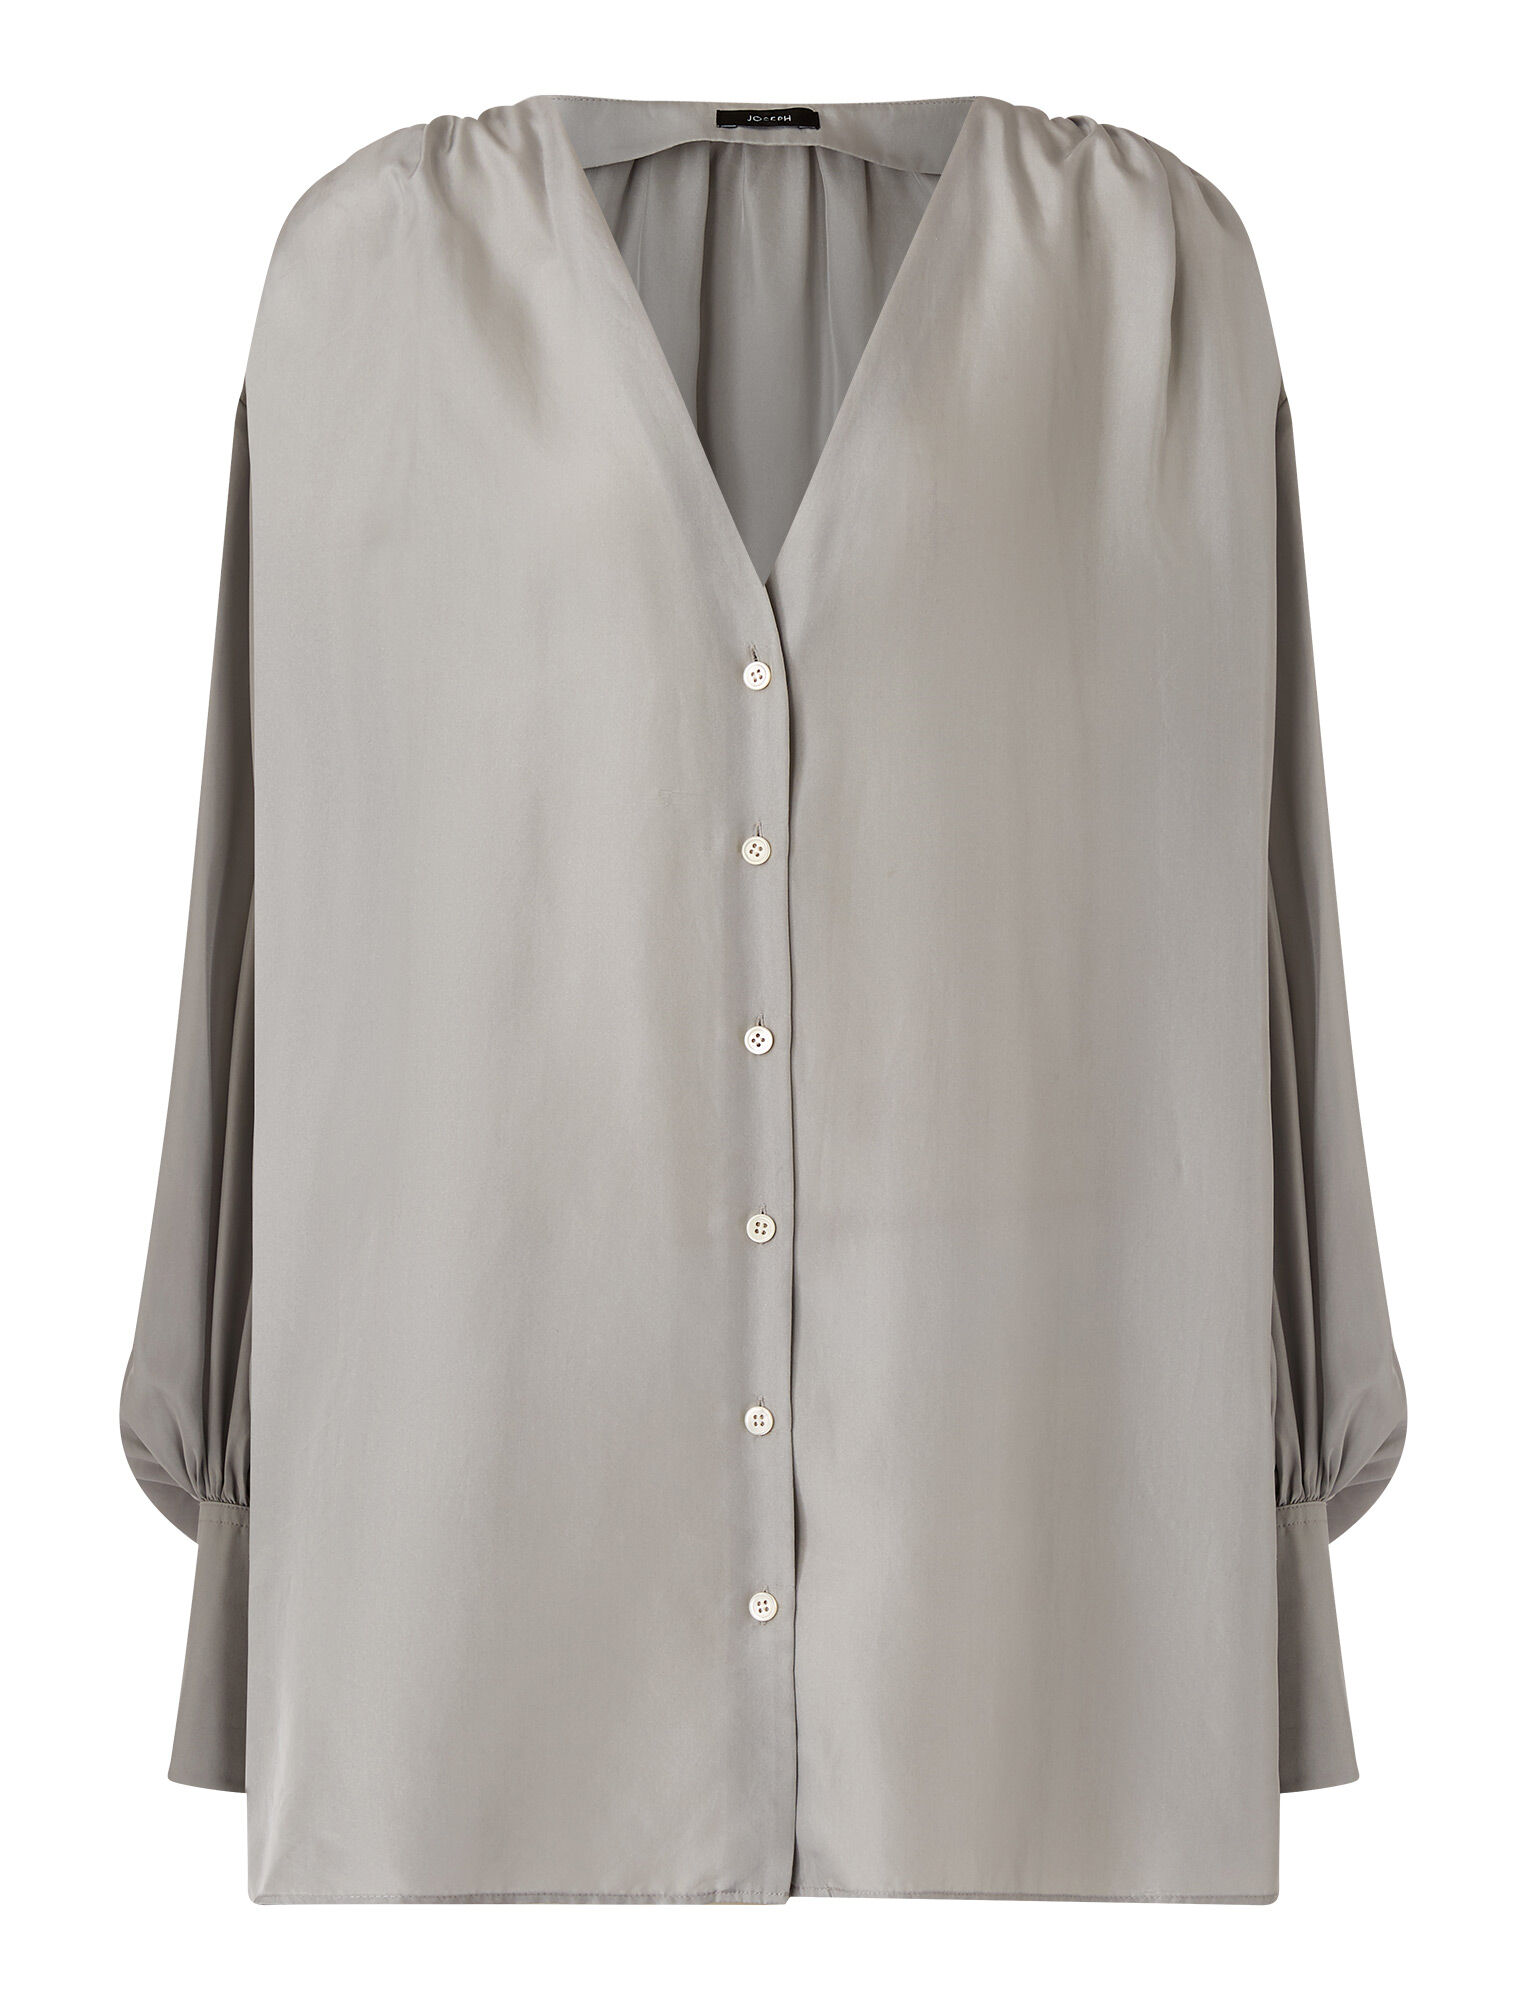 Joseph, Habotai Barry Blouse, in CLOUD